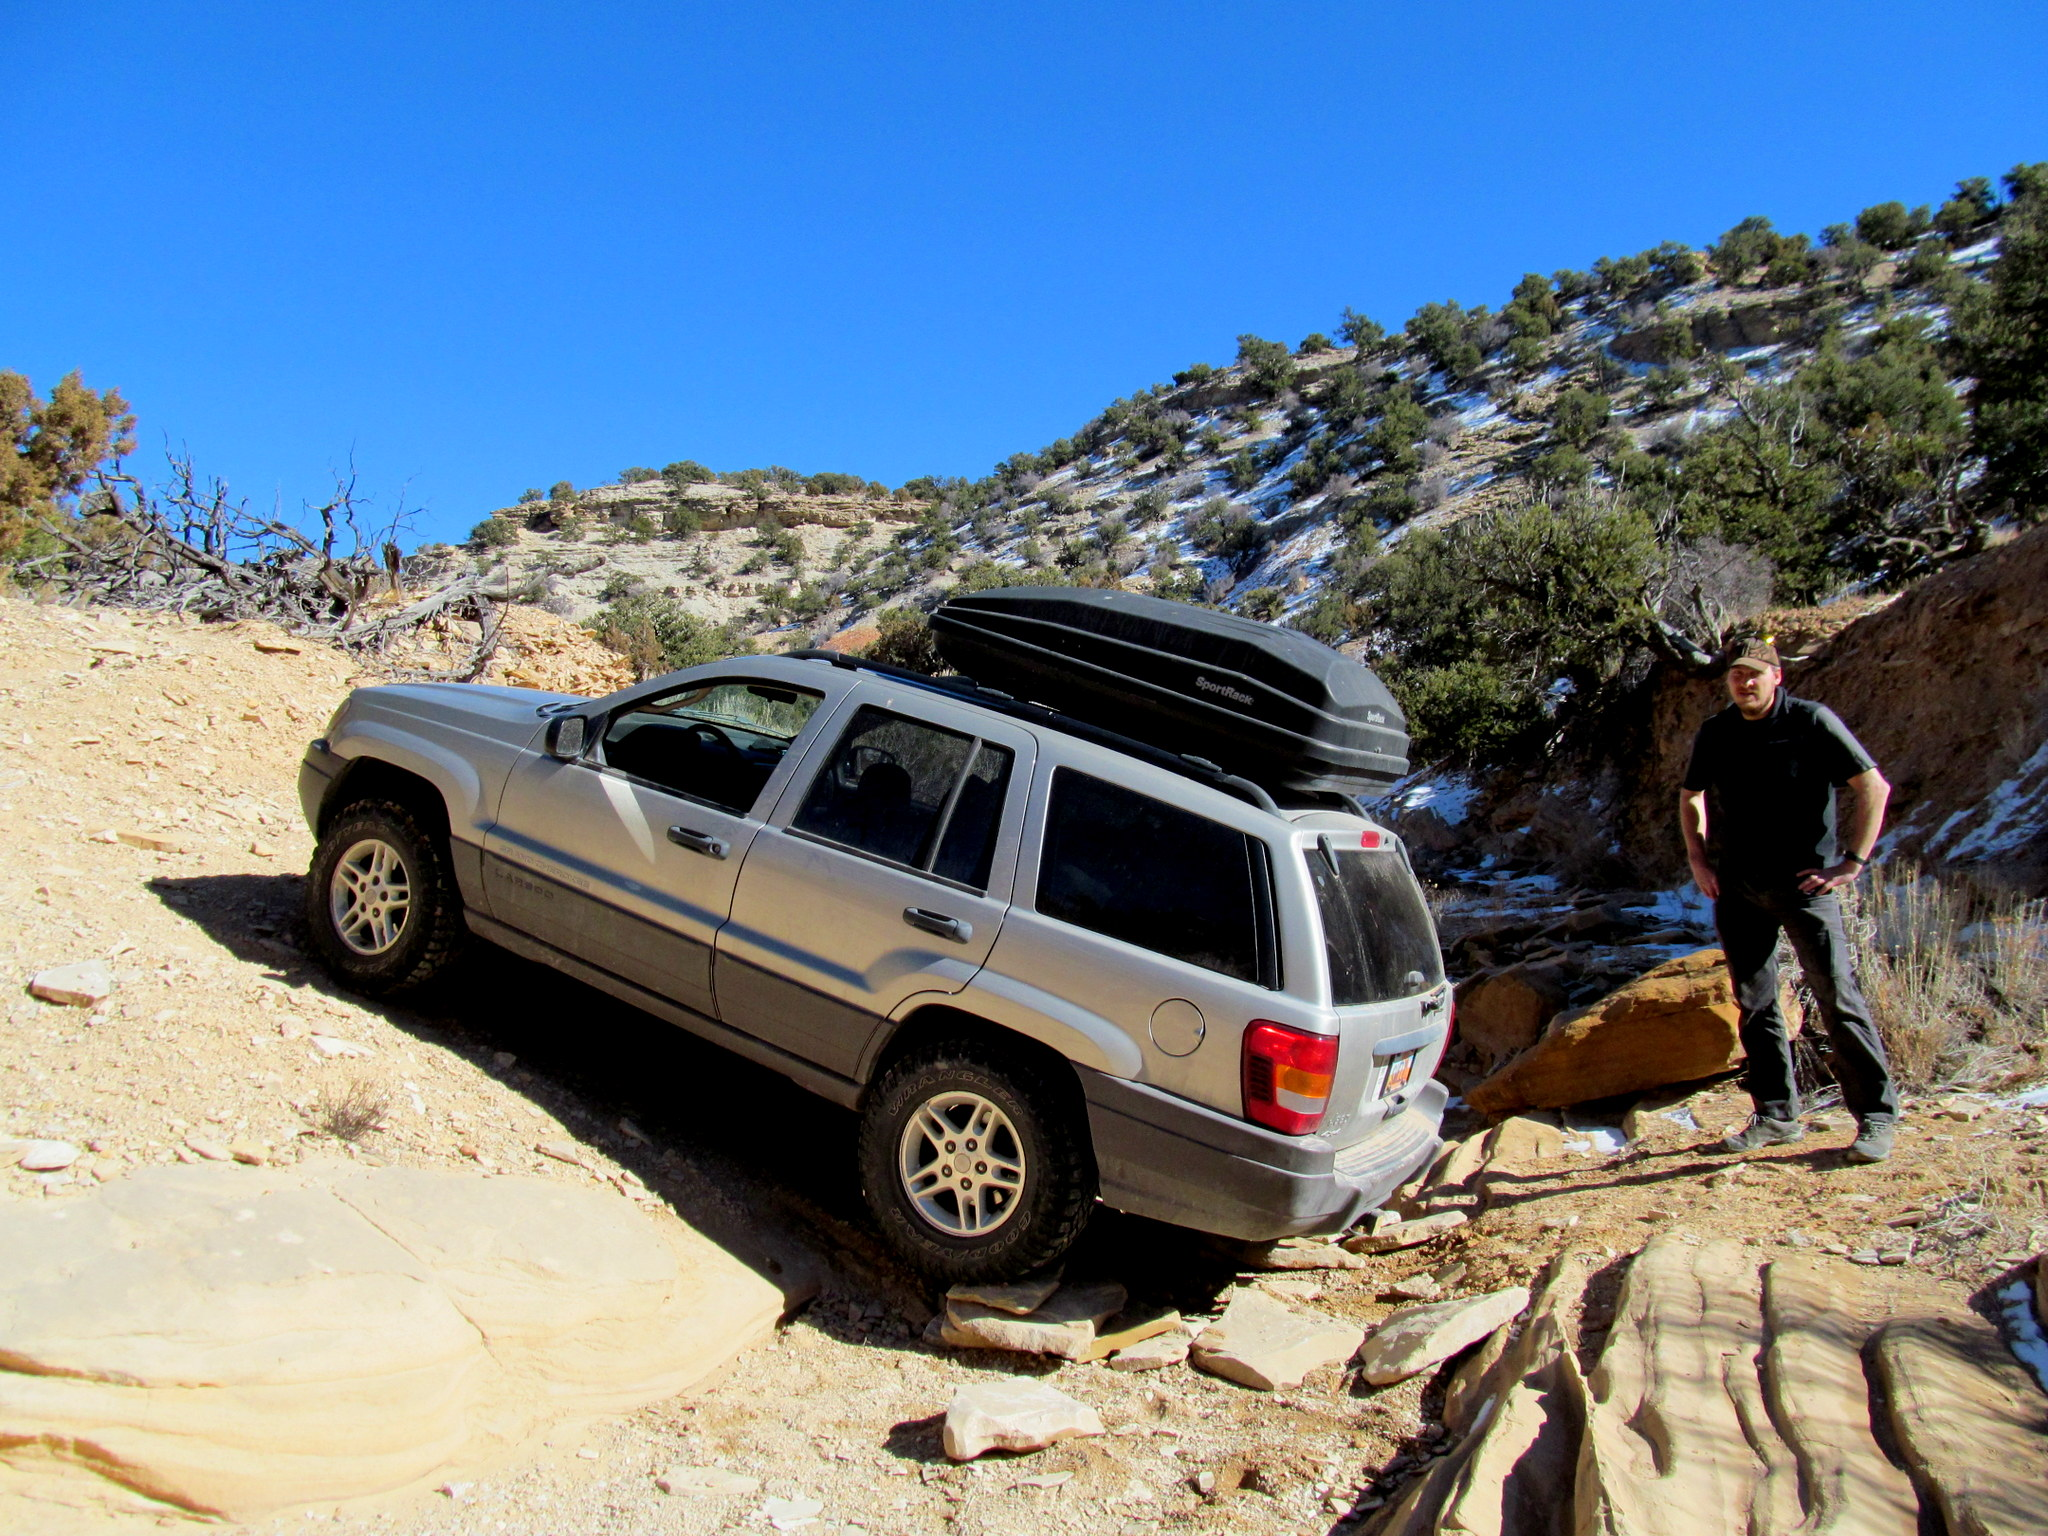 Photo: Stacking rocks to get unstuck on the Sagebrush Bench road